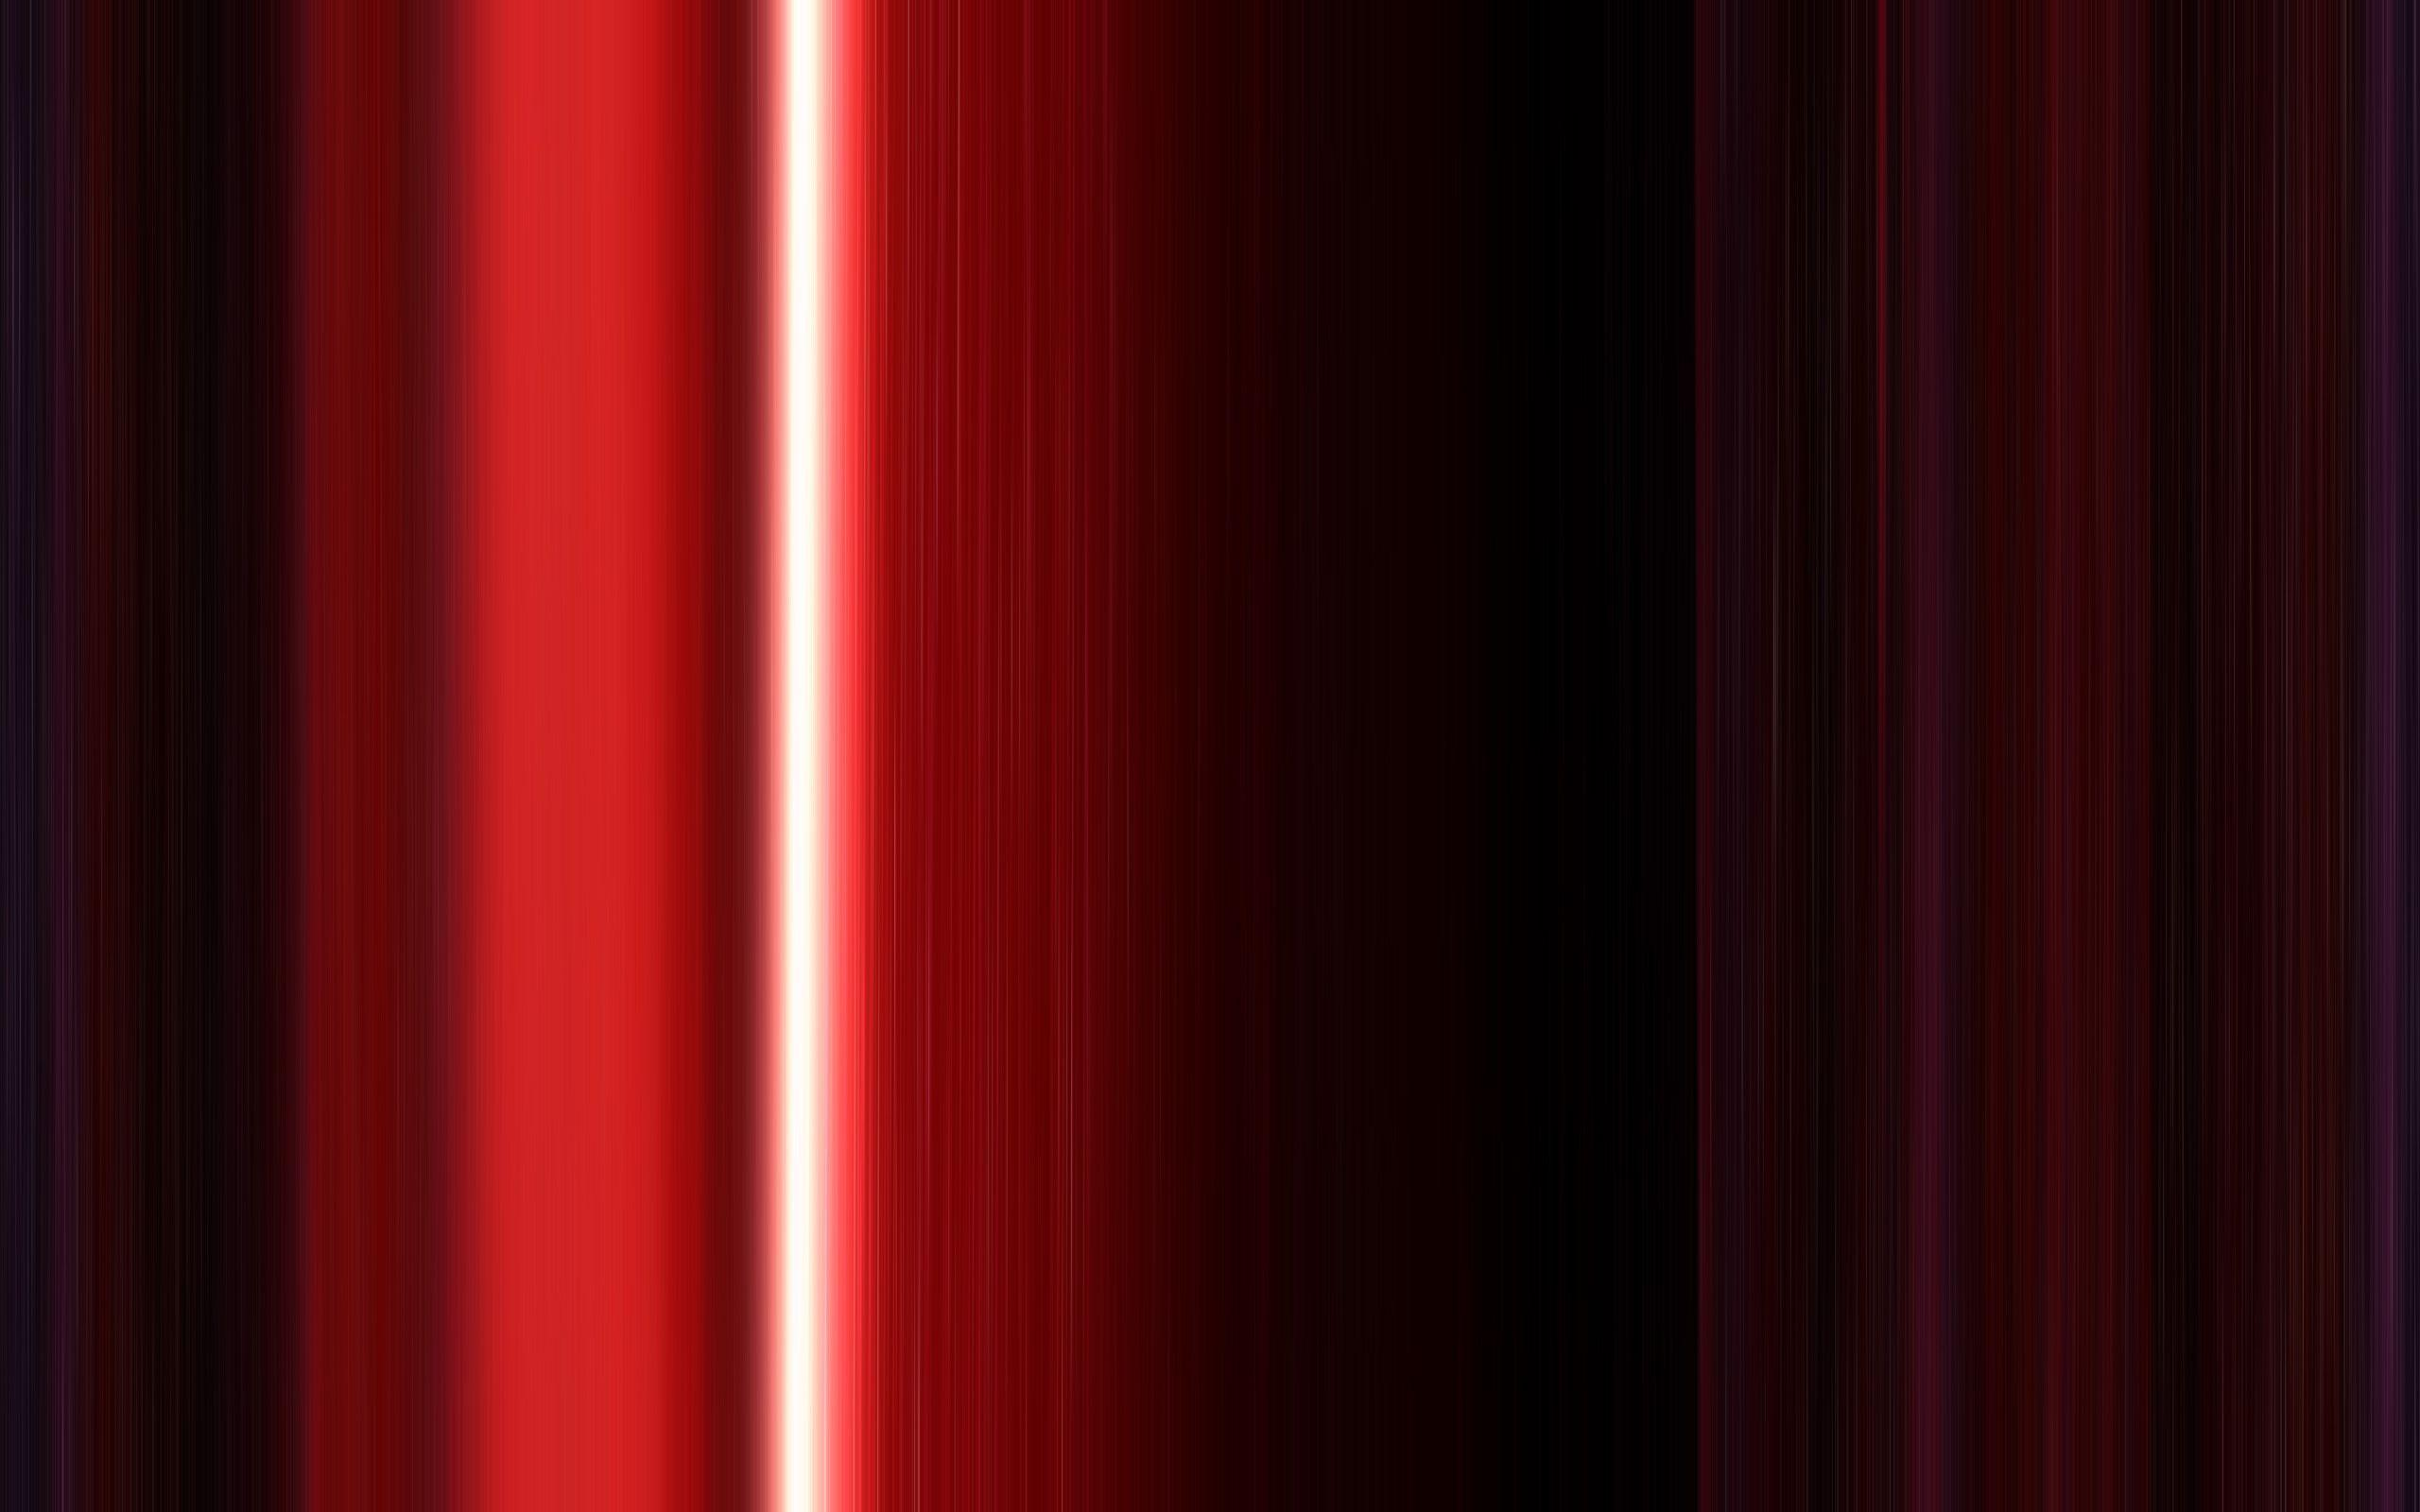 black backgrounds free hd download : Cool Red And Black Backgrounds